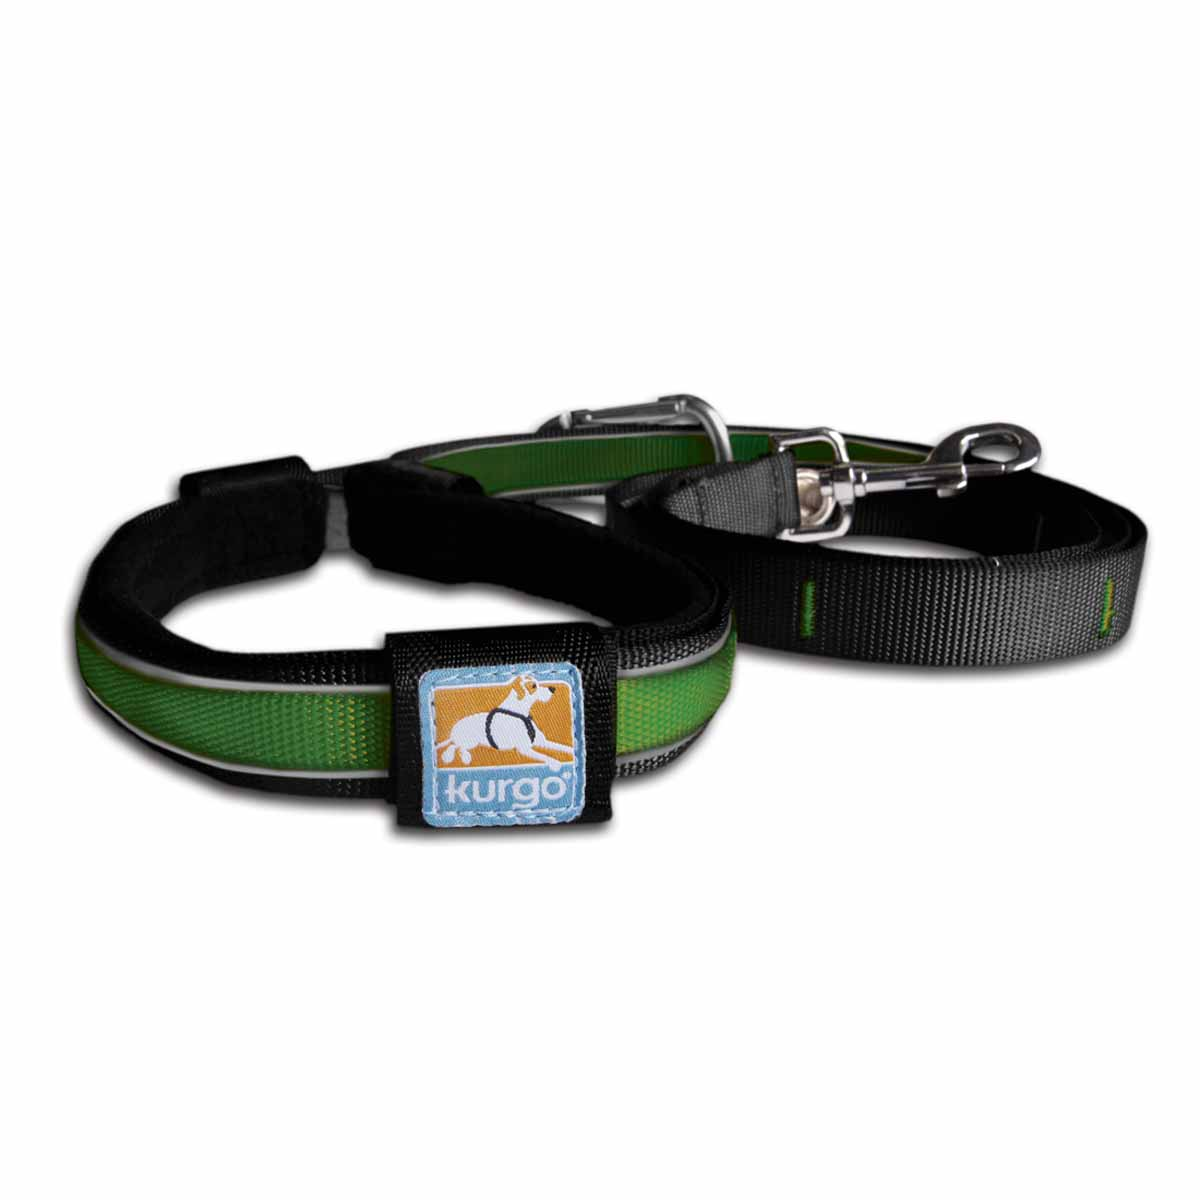 Reflect and Protect Quantum Dog Leash by Kurgo - Grass Green